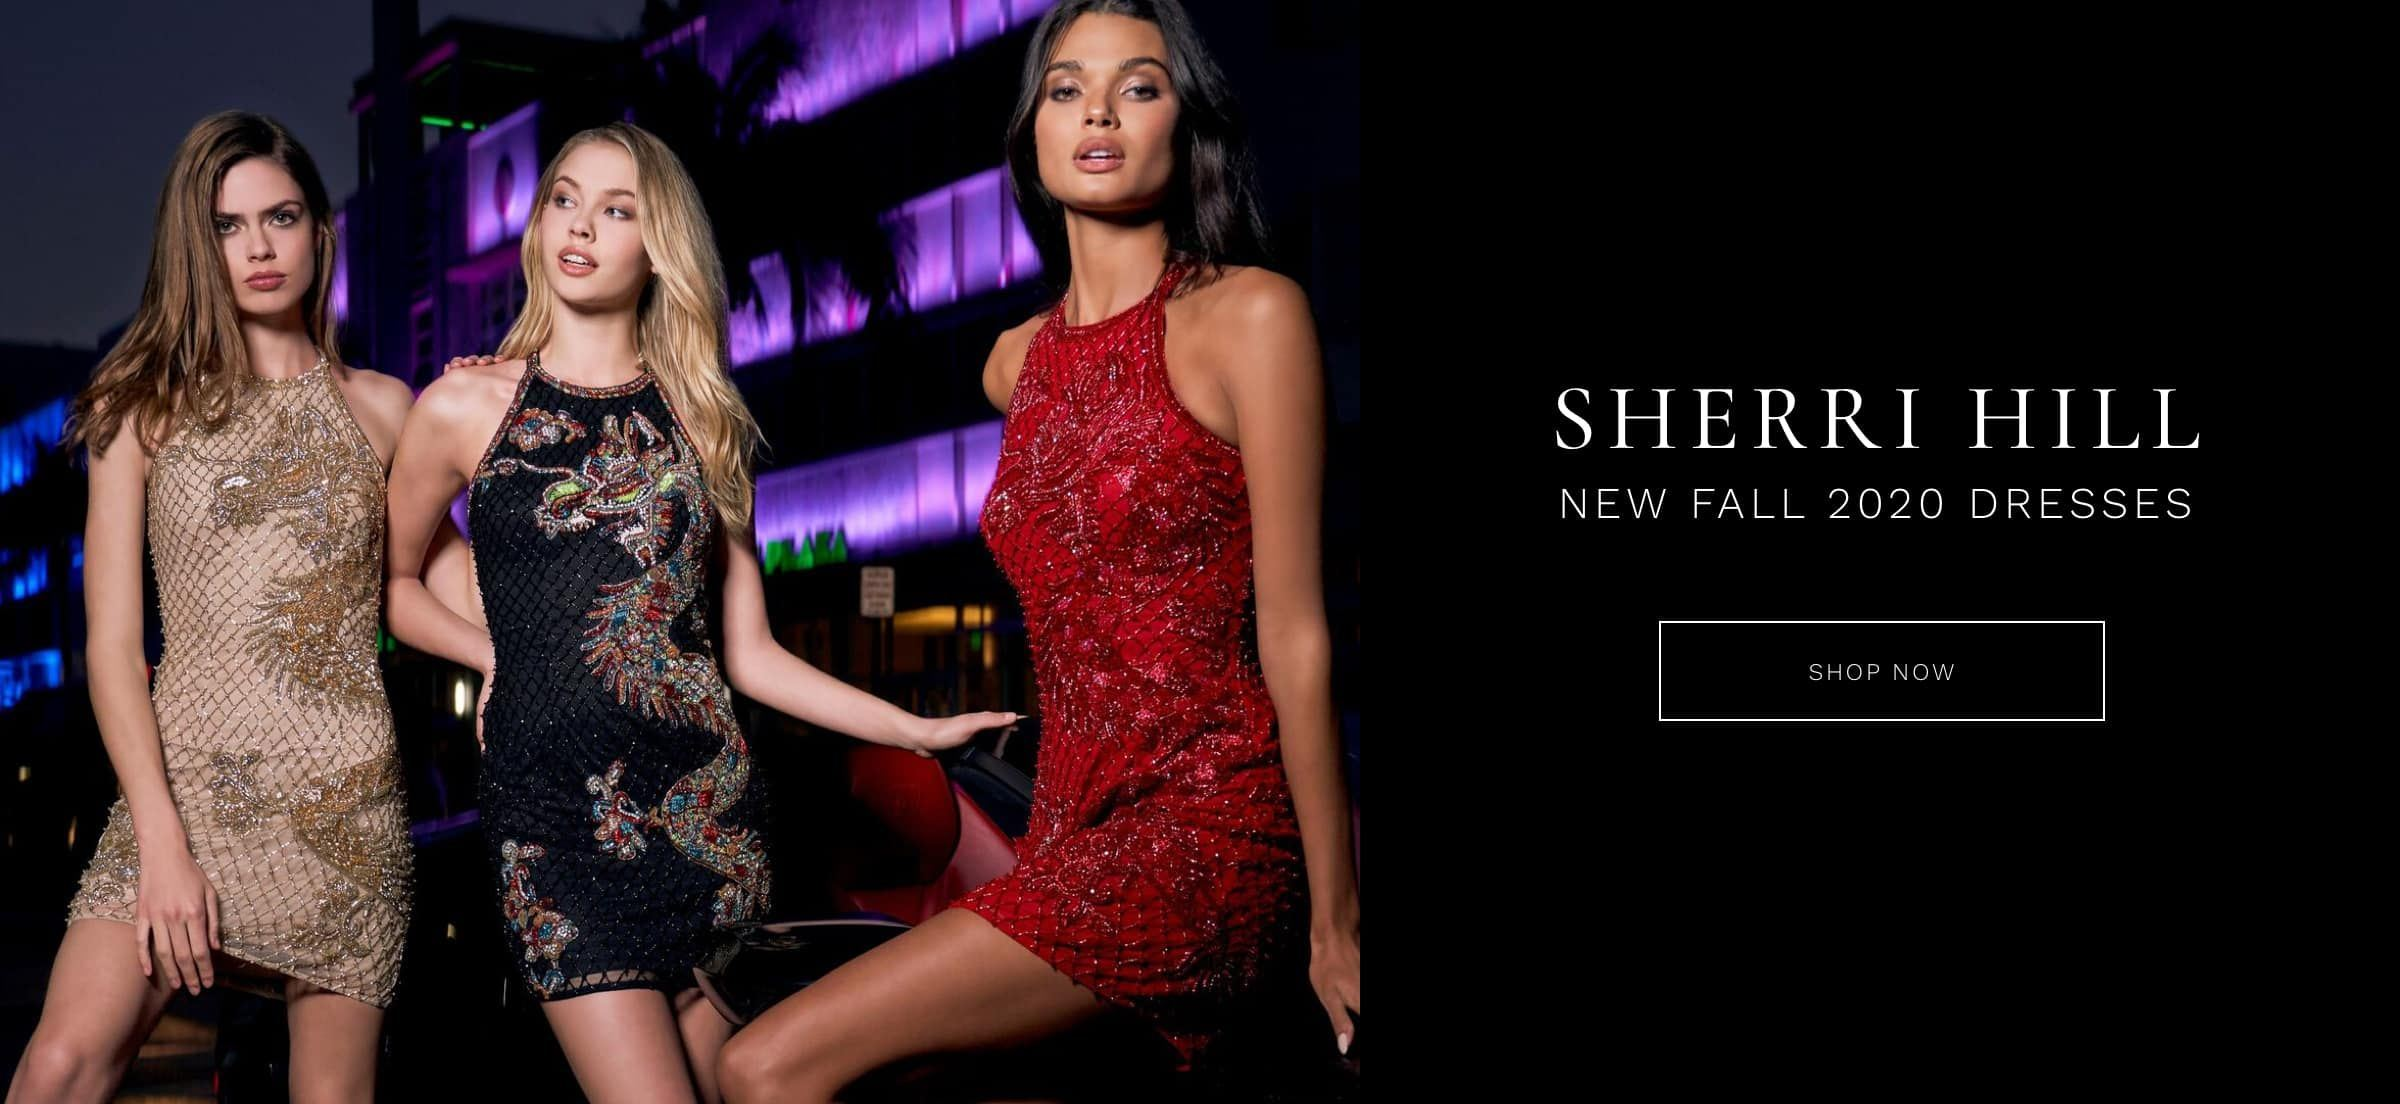 Sherri Hill Prom Dresses for Fall Desktop